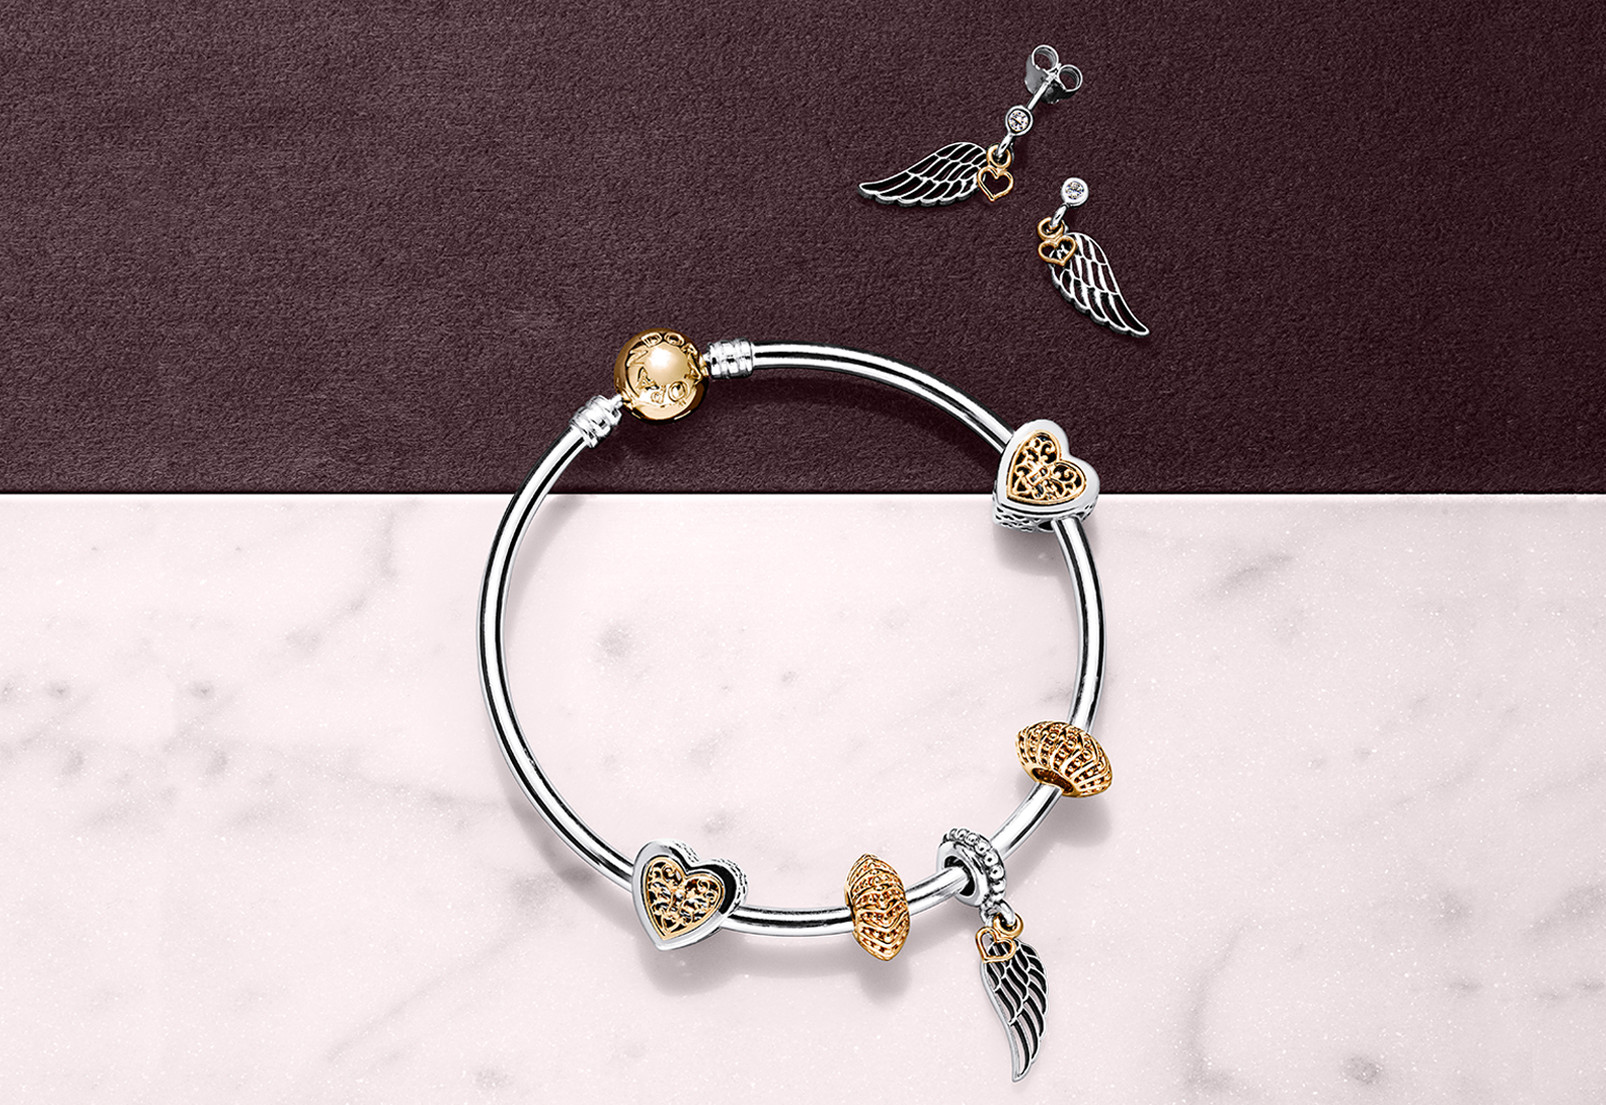 autumn 2015 lookbook womens jewelry pandora - Pandora Bracelet Design Ideas